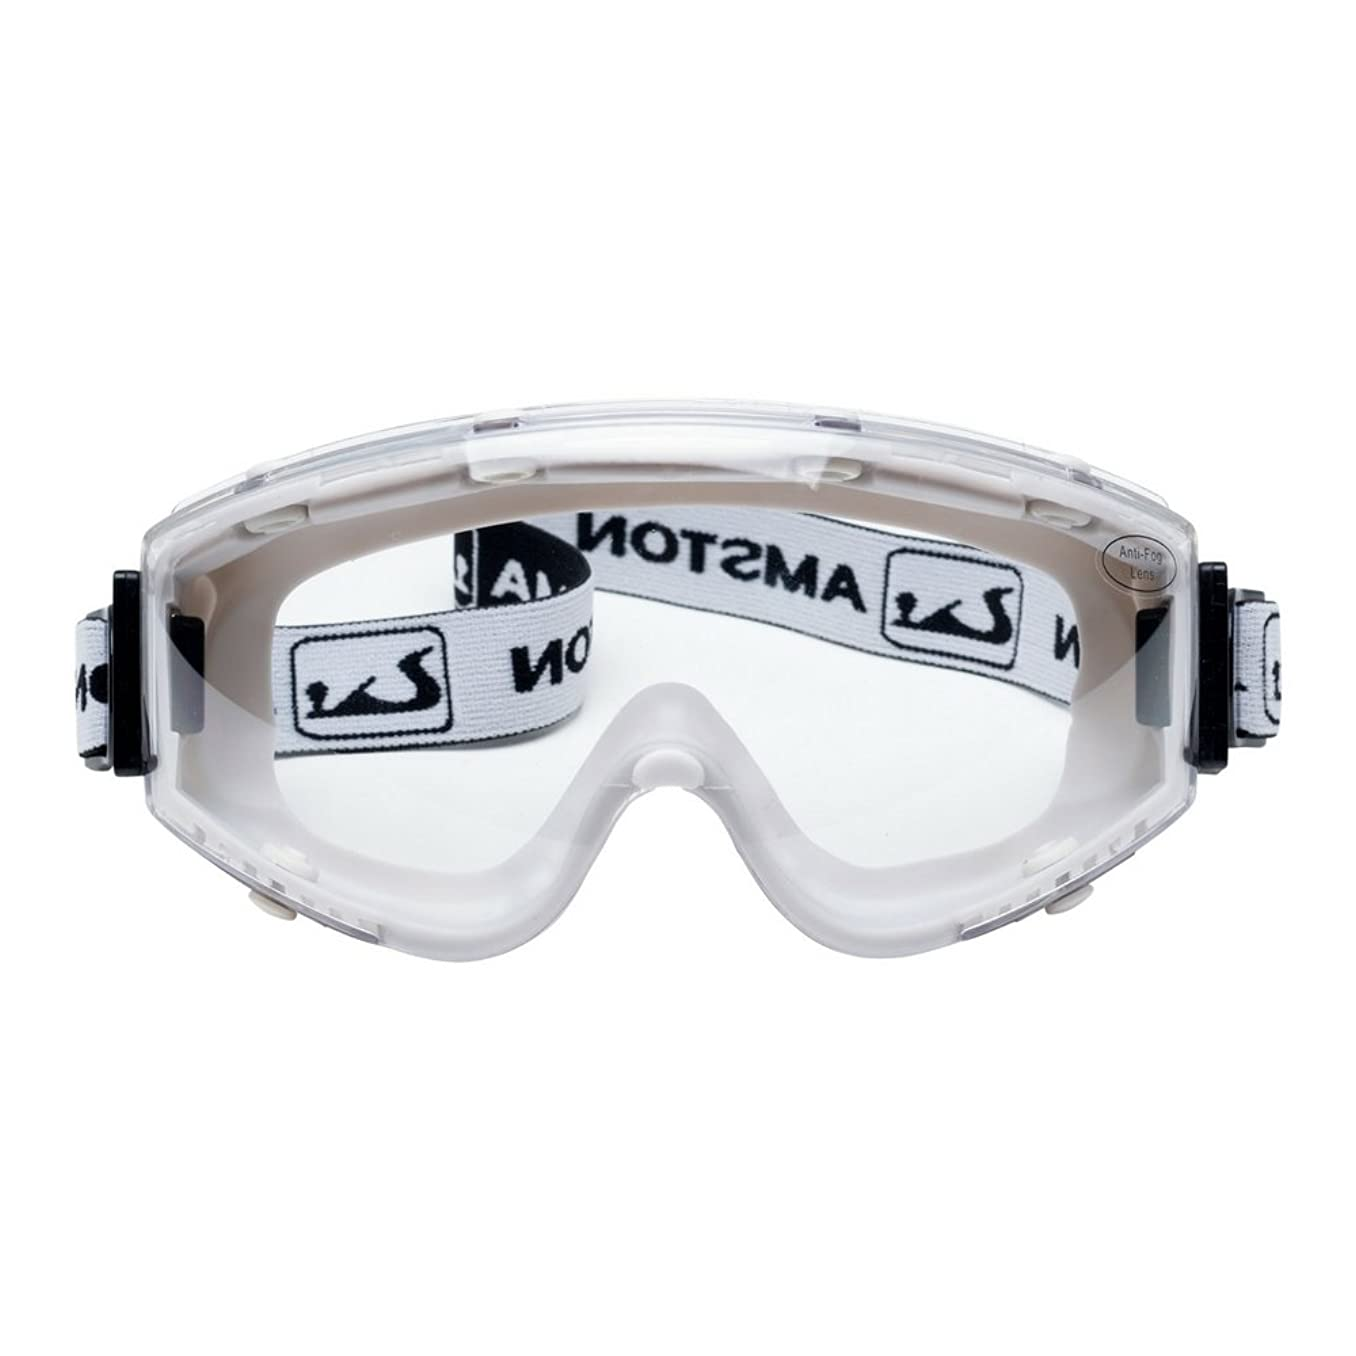 AMSTON Safety Goggles ANSI Z87.1 - Meets OSHA Standards - Personal Protective Equipment for Indoor & Outdoor Use In Construction, DIY, Laboratories …